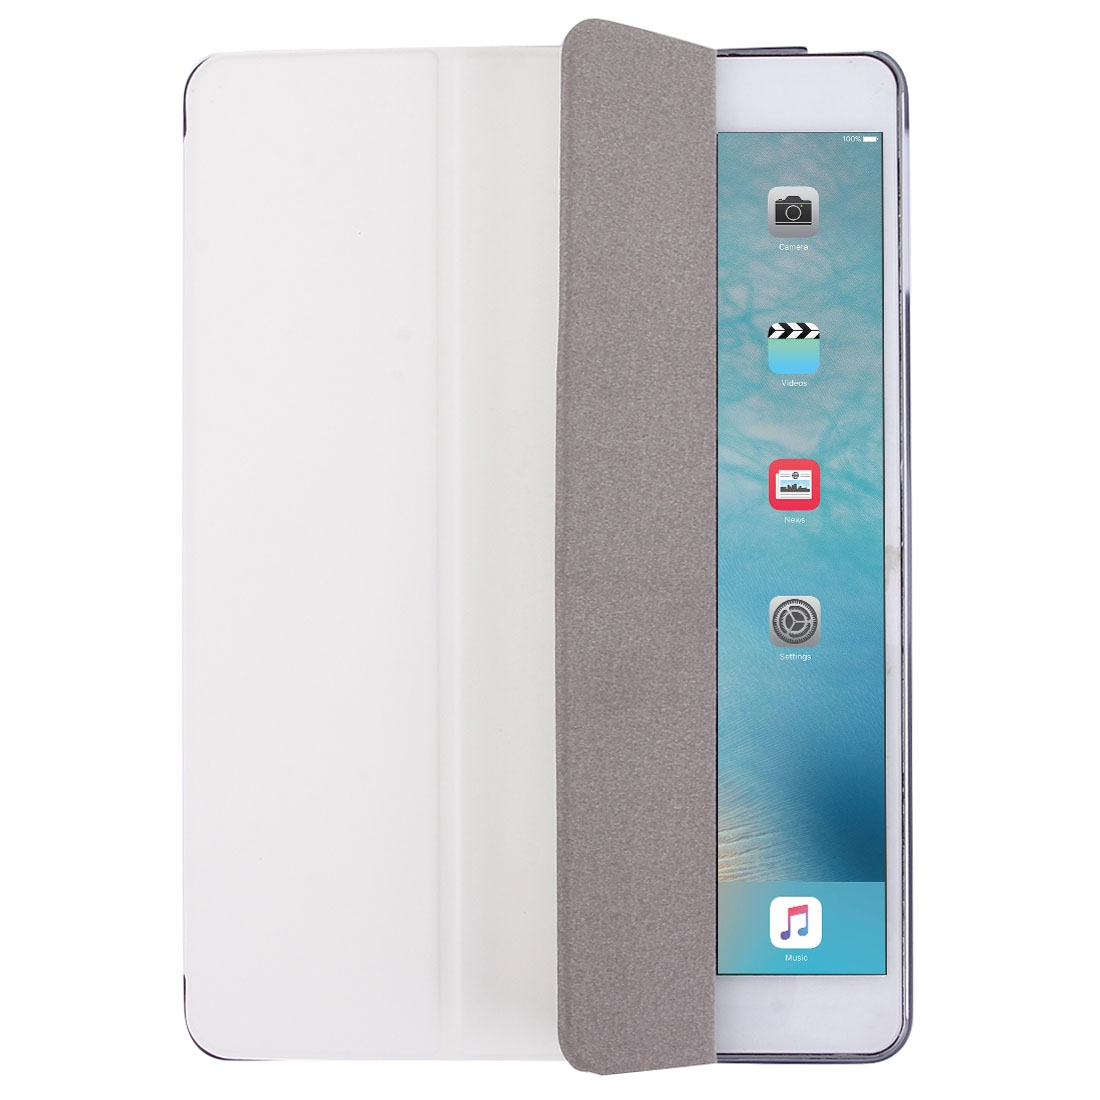 iPad Air Case Also Fits iPad 5, Features A Protective Leather Cover With Auto Sleep/Awake (White)